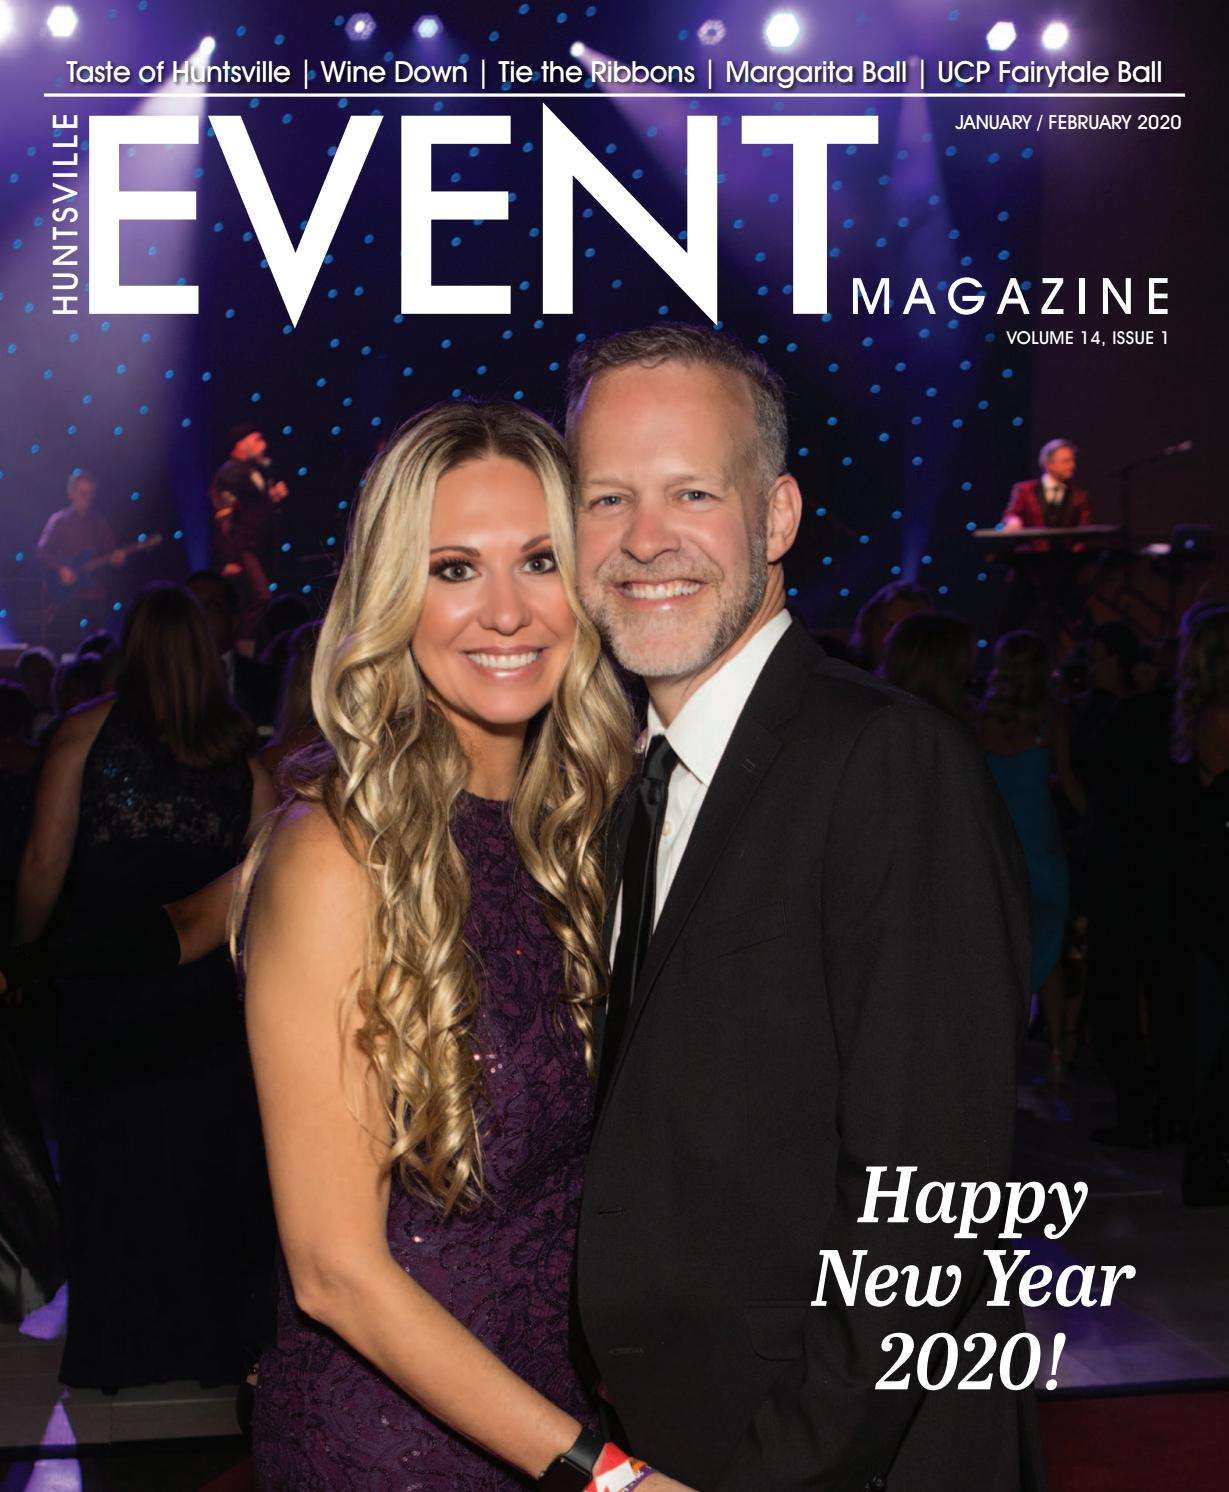 Jan Feb Issue By Event Magazine Issuu Add it to your altar to aid you in your divination spells and rituals, or use it as a focus for meditation. jan feb issue by event magazine issuu